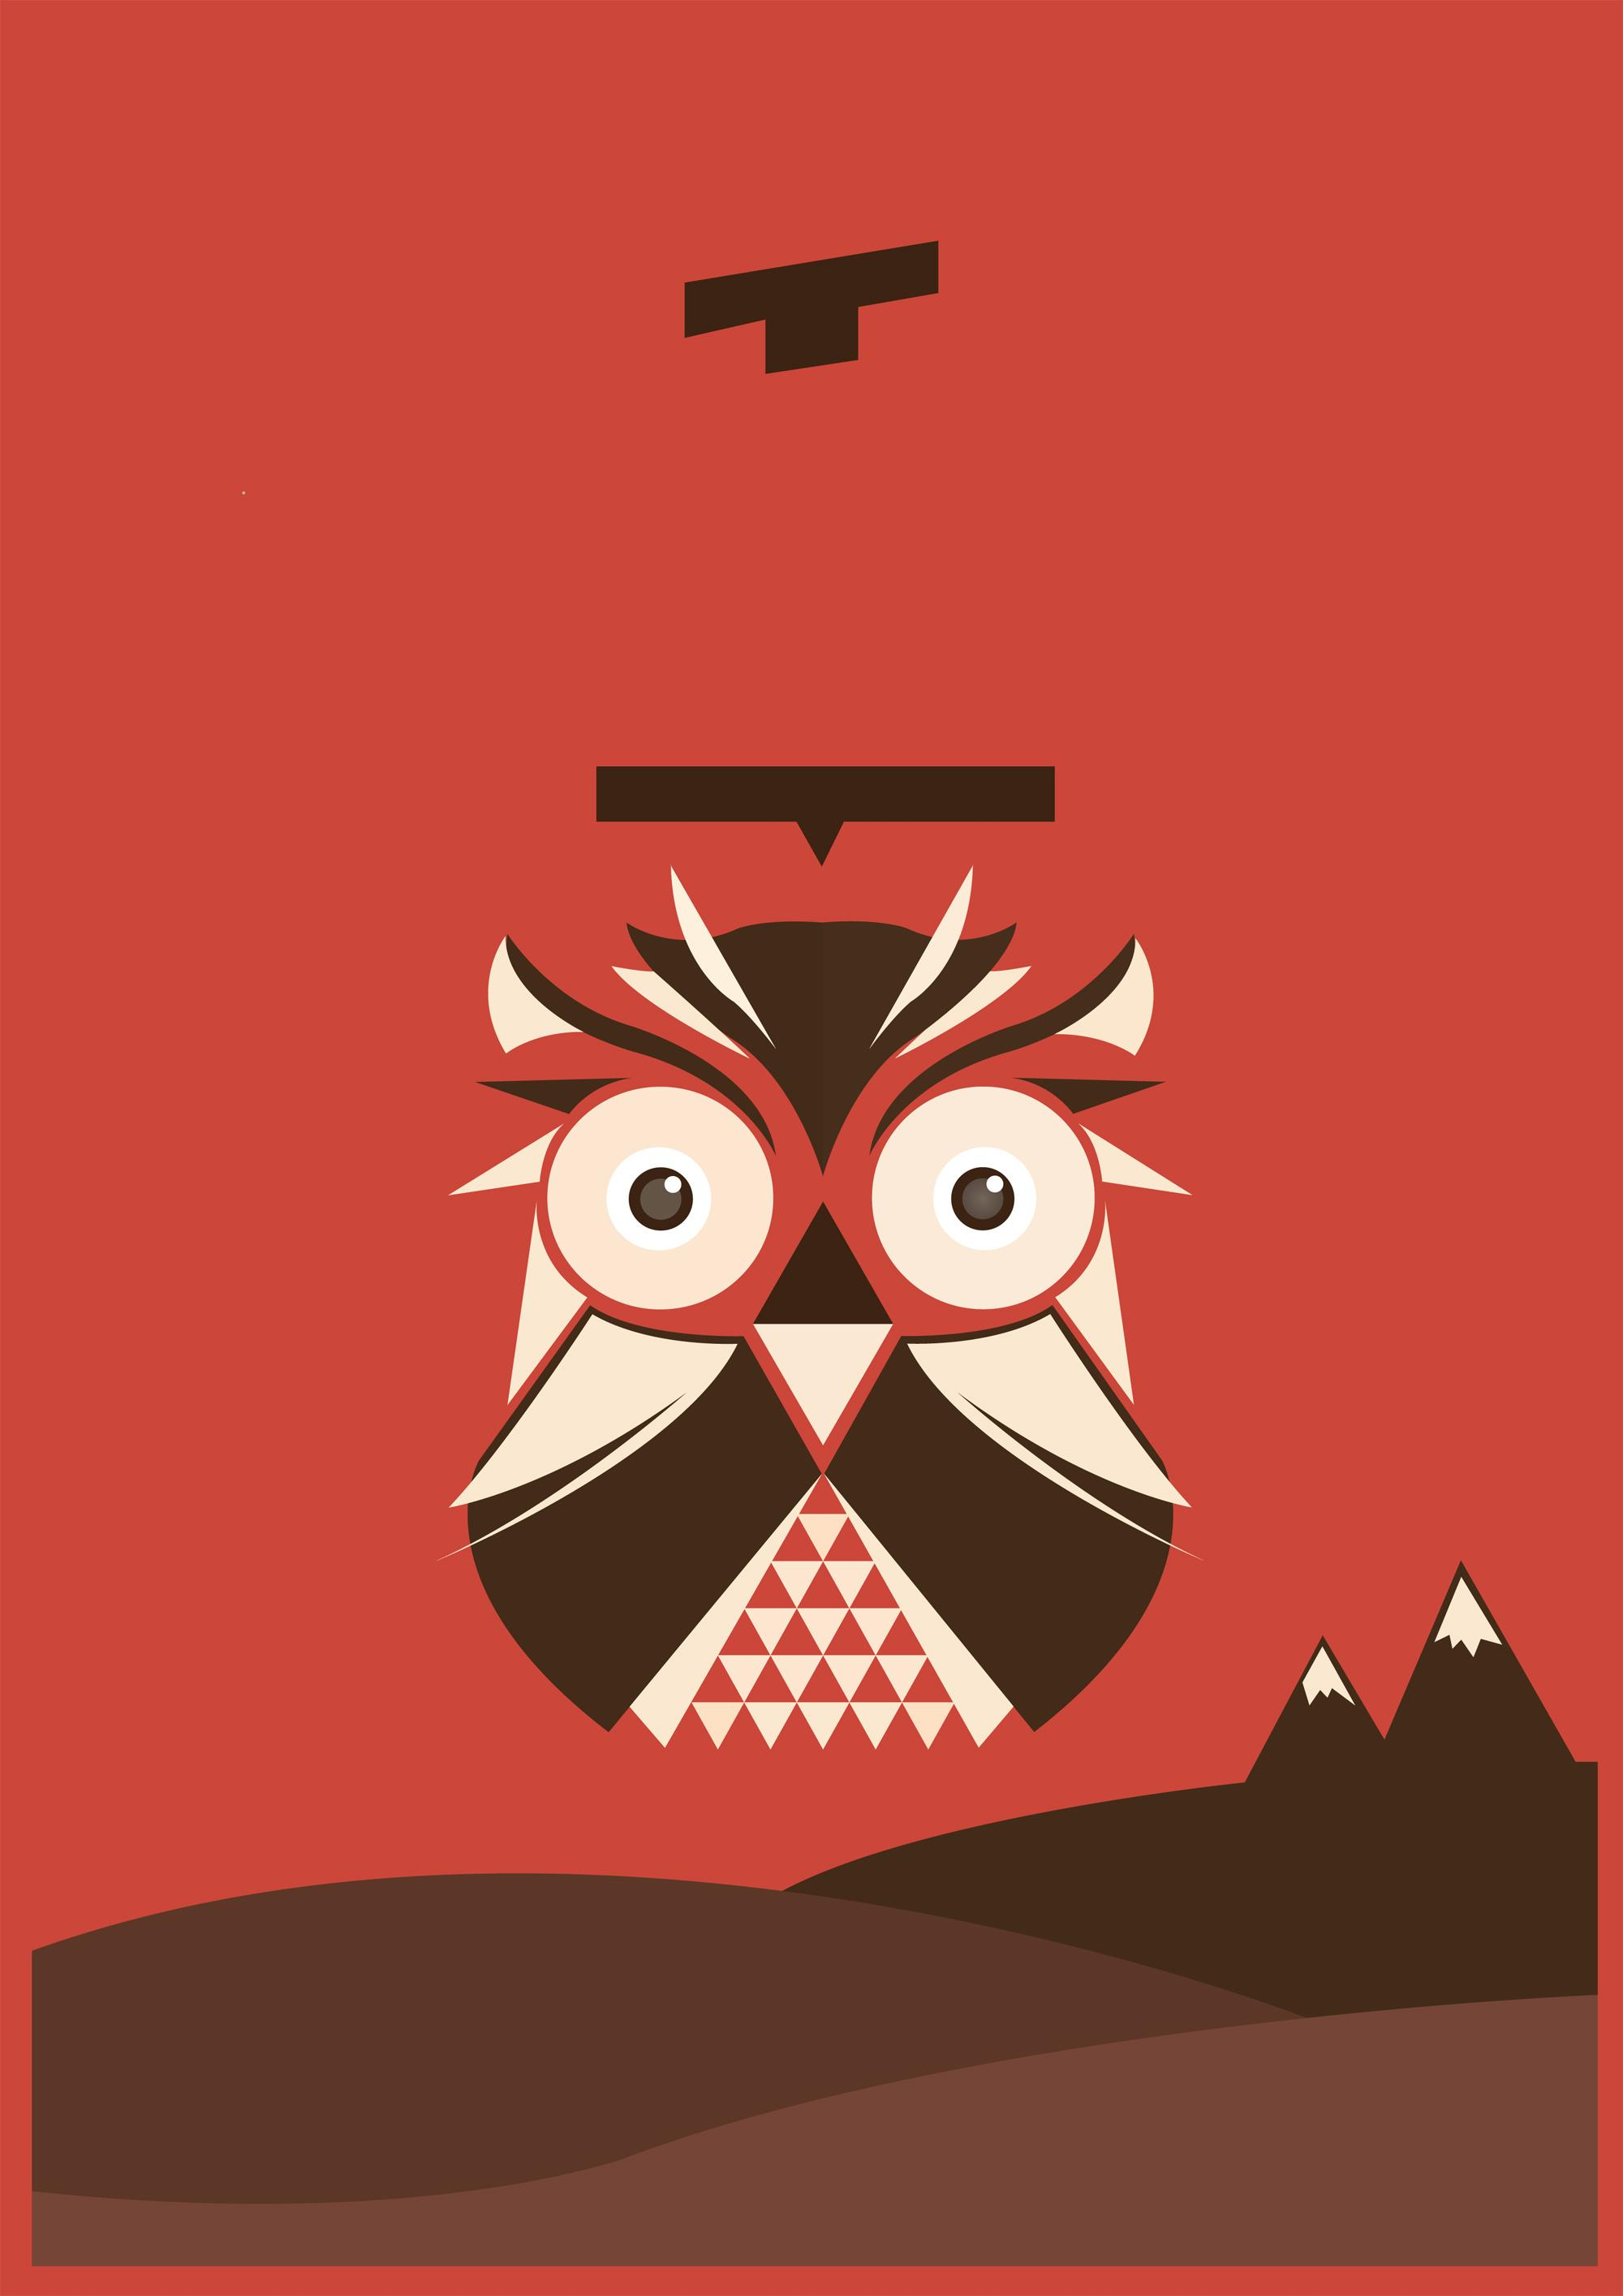 Twin Peaks - image 2 - student project